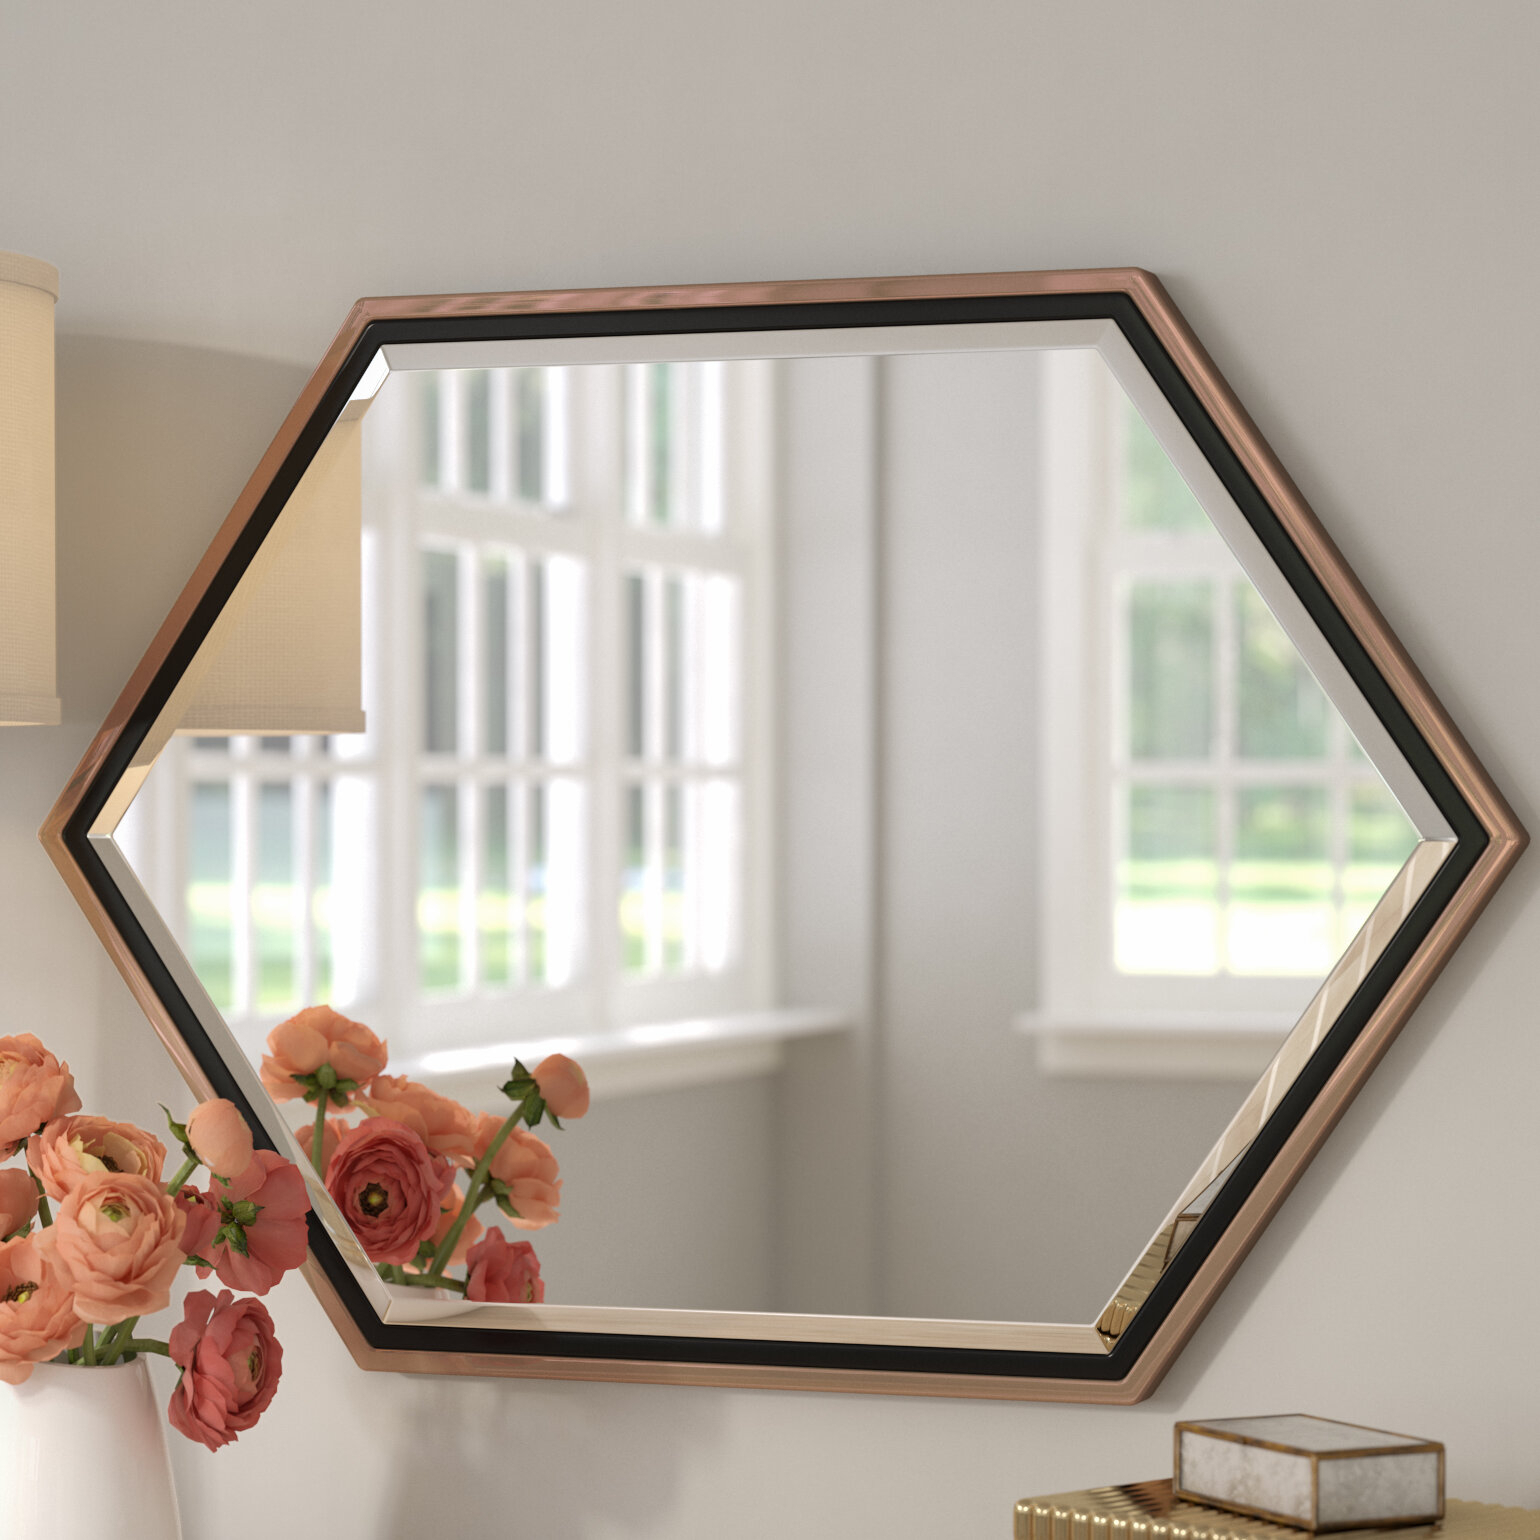 Broadmeadow Accent Wall Mirror | Wayfair Regarding Broadmeadow Glam Accent Wall Mirrors (View 7 of 20)